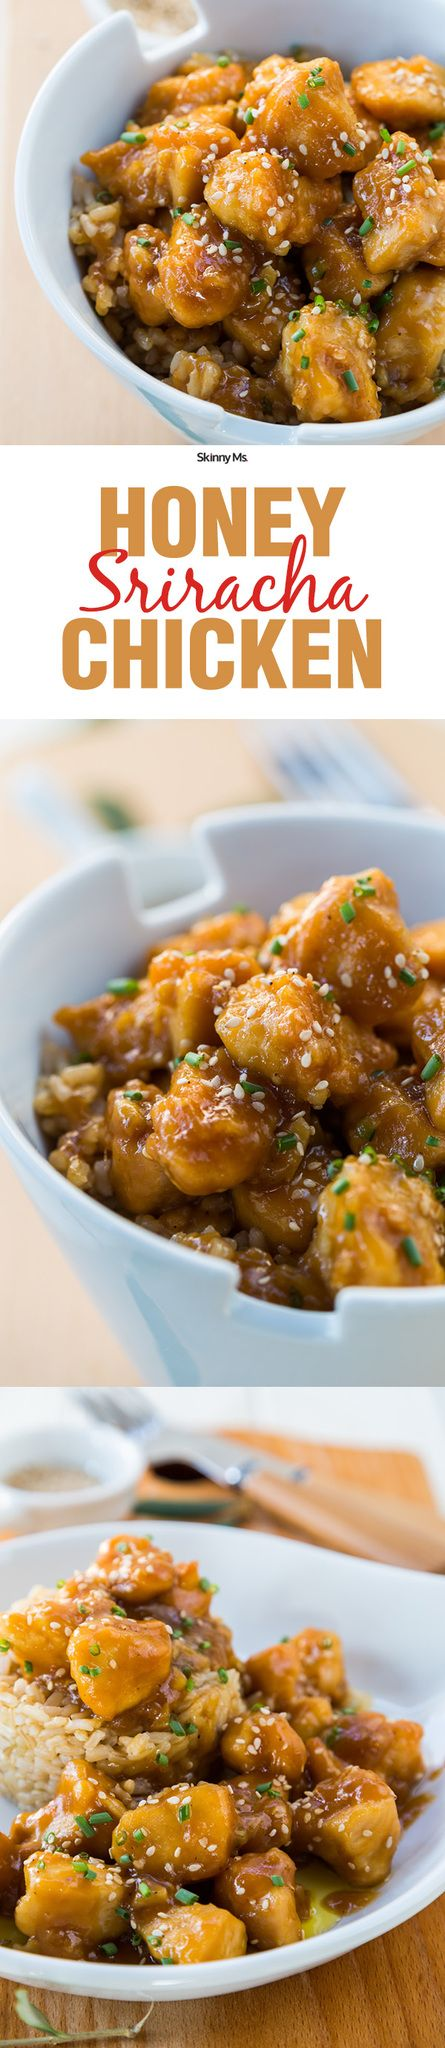 The perfect balance of sweet and spicy--Skinny Ms. Honey Sriracha Chicken!